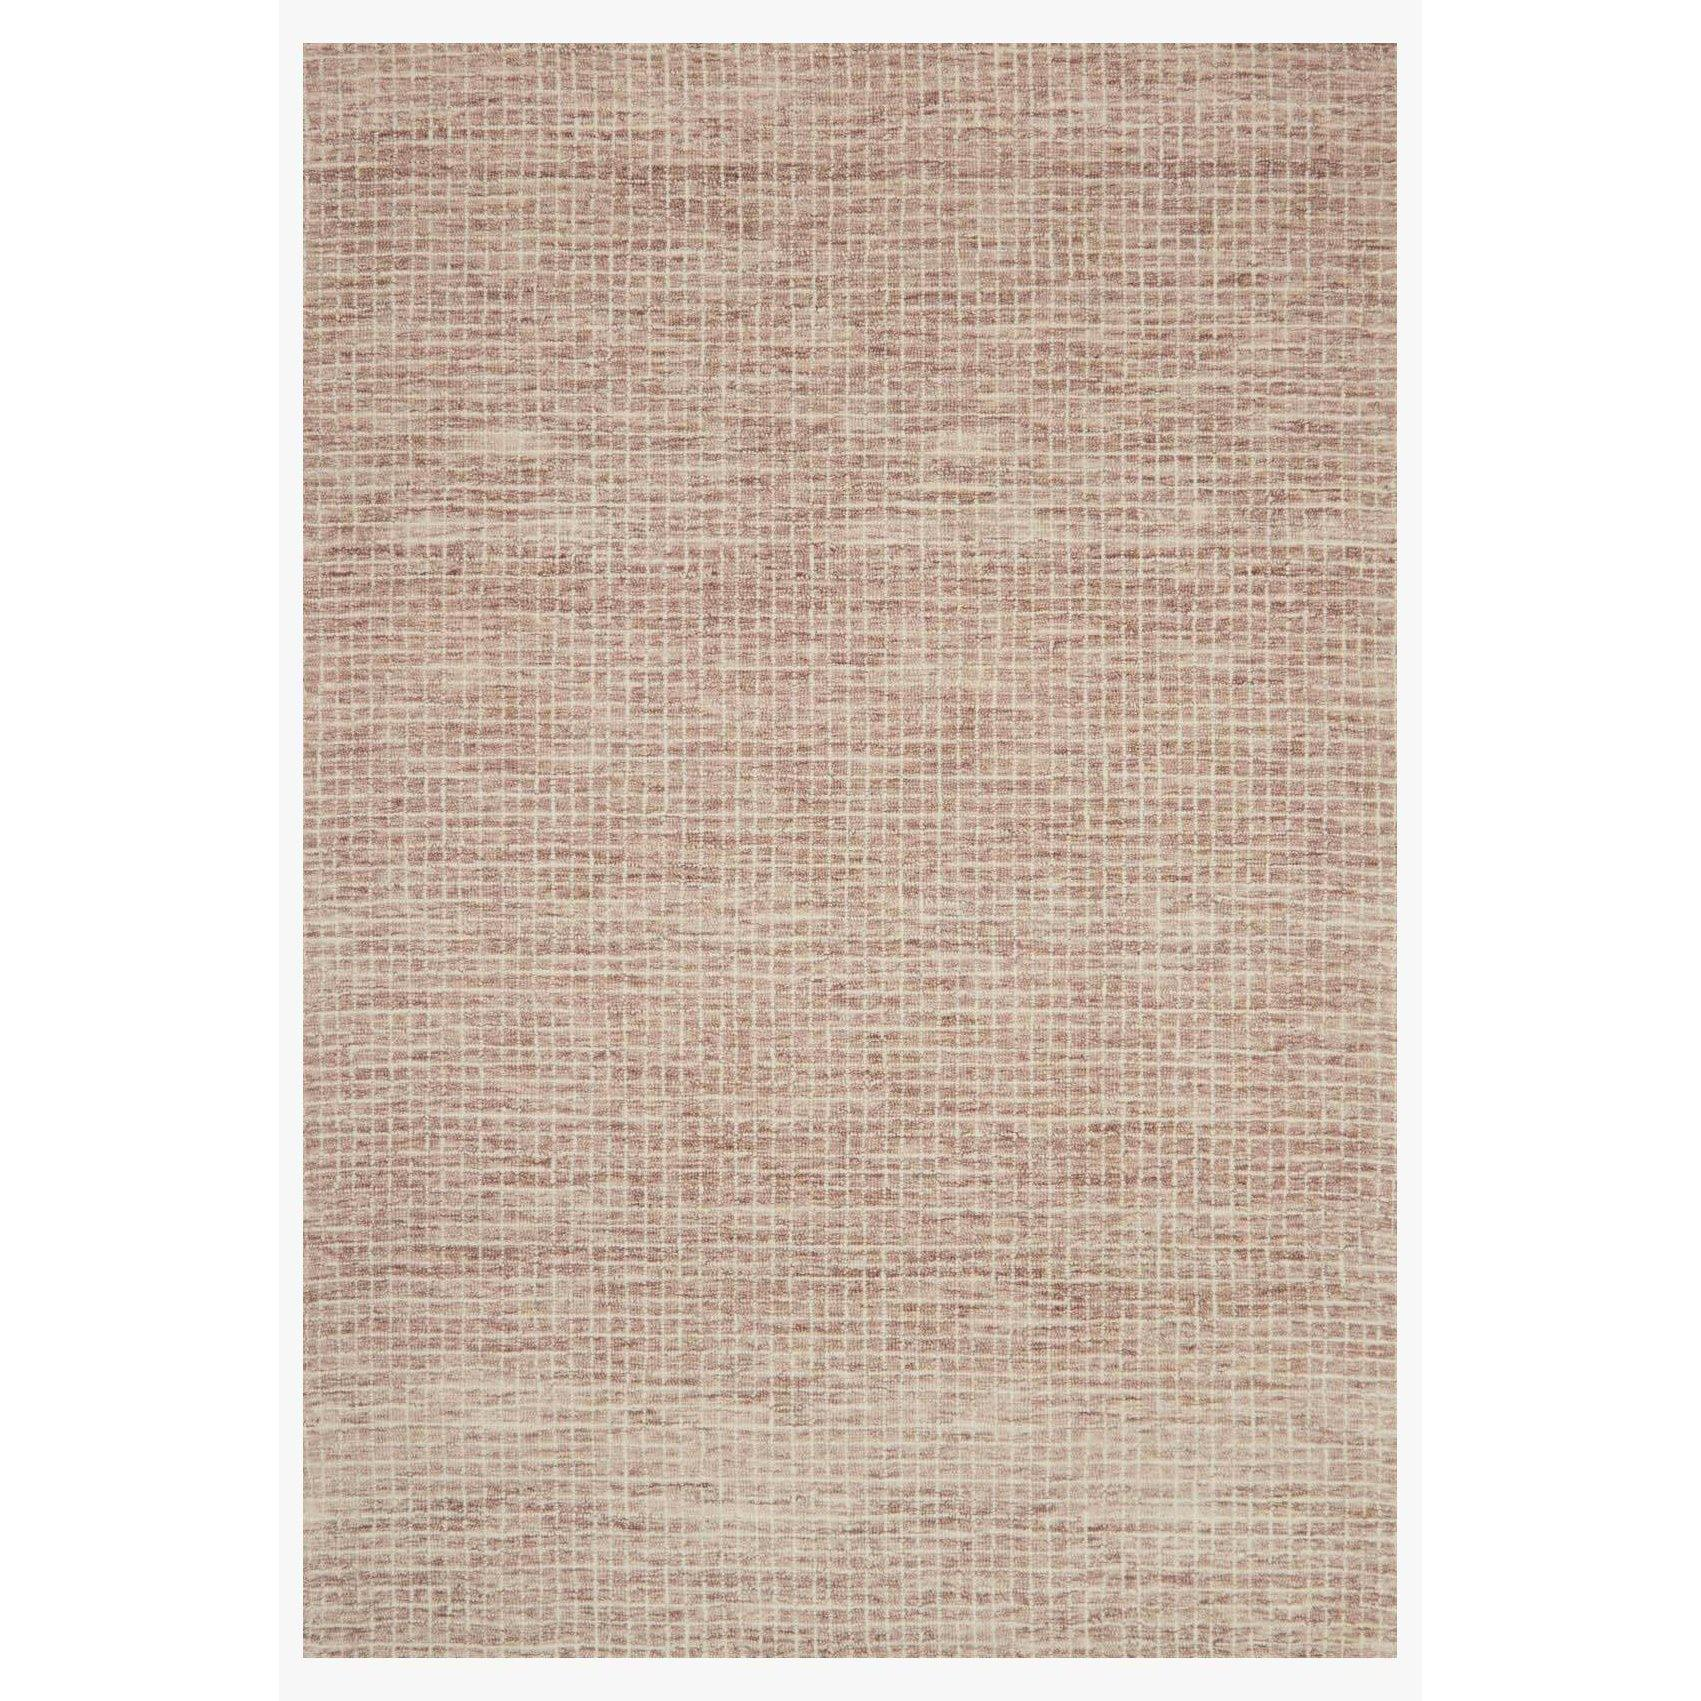 Giana Blush Wool Rug - Reimagine Designs